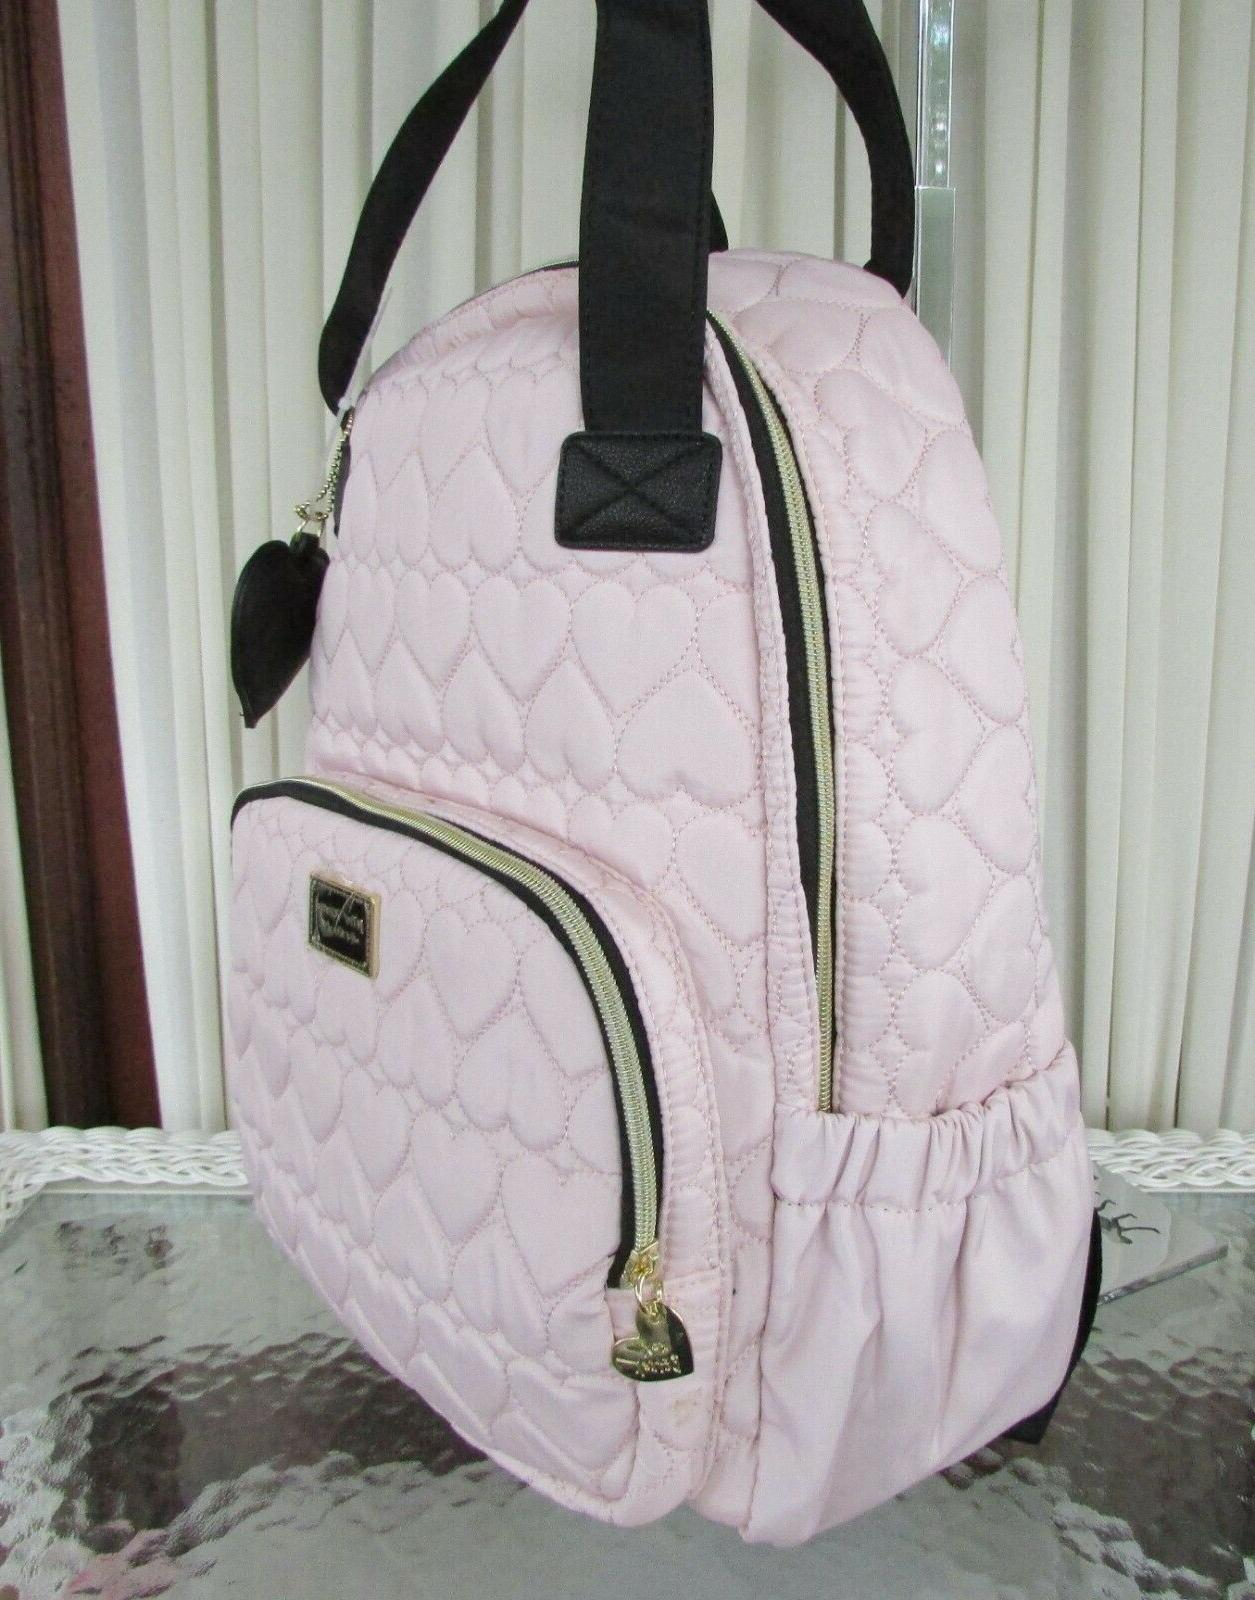 Betsey Johnson Backpack in School Hearts NWT